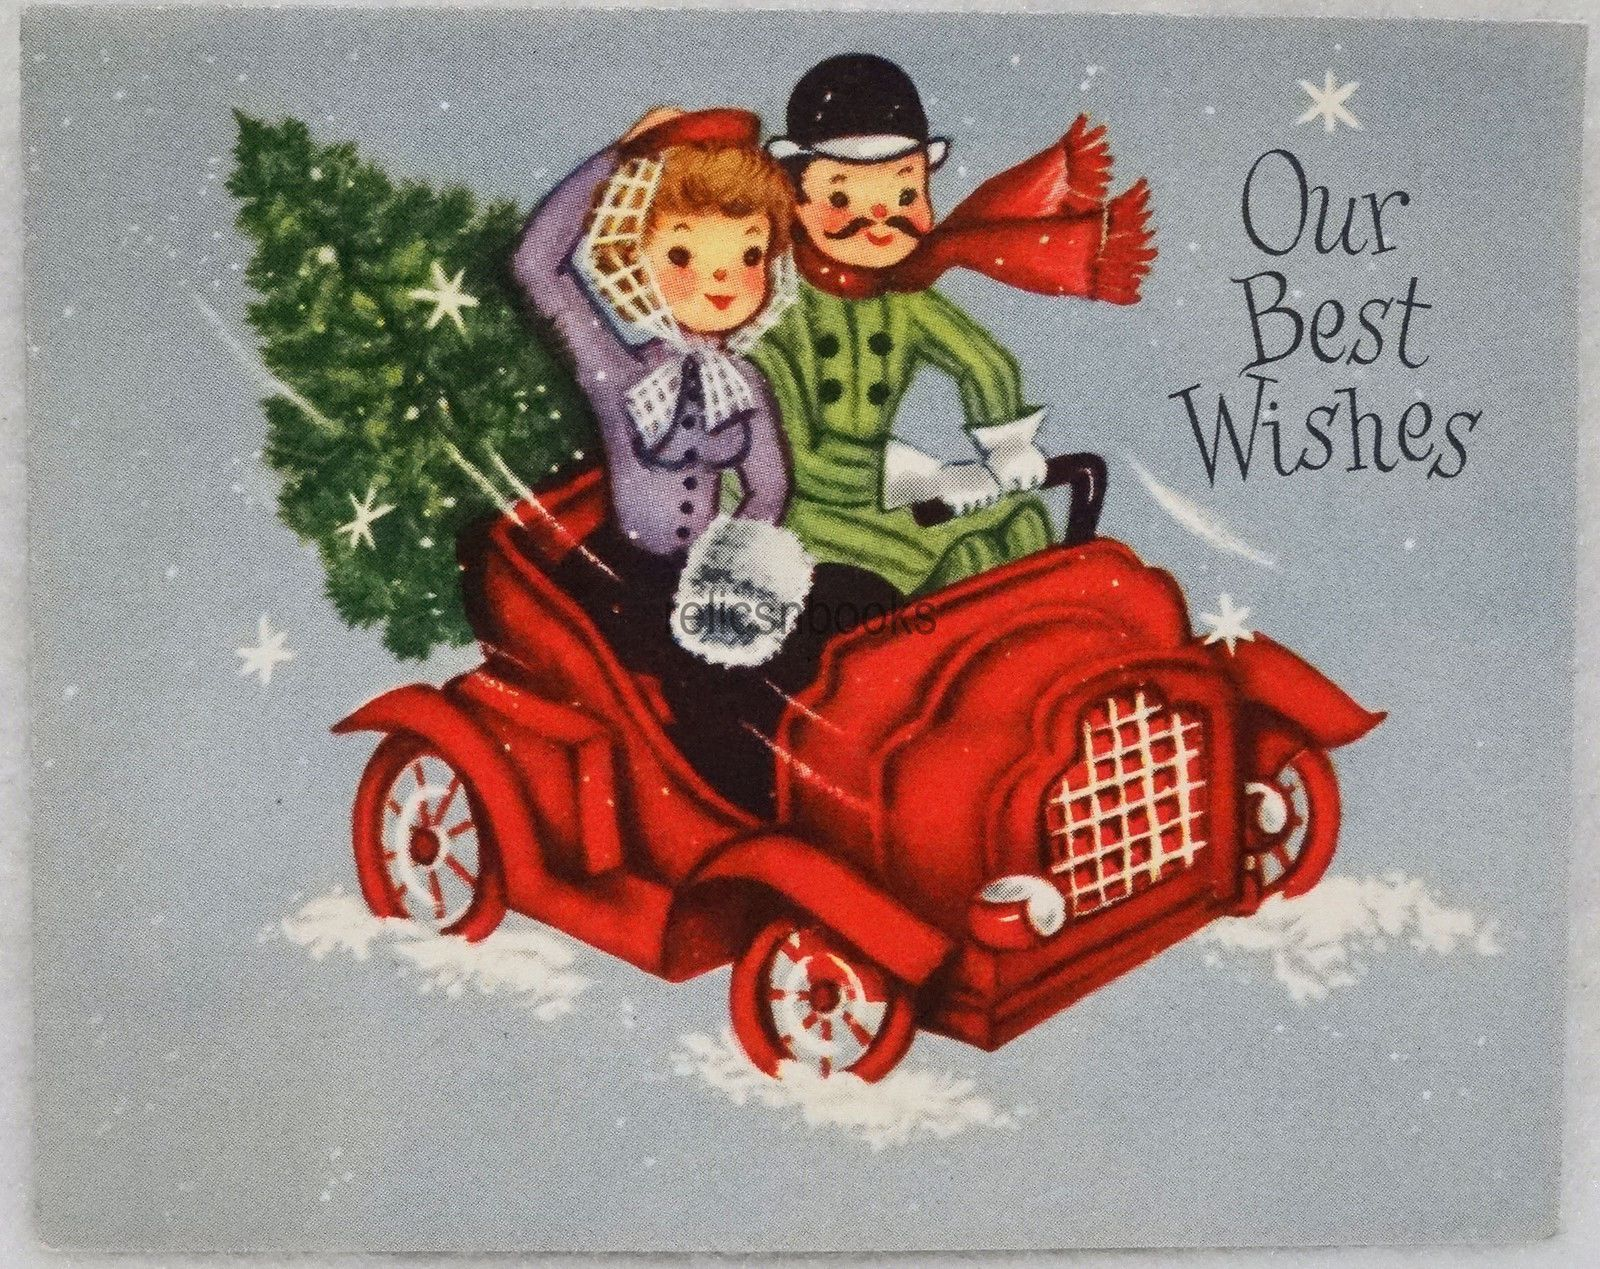 123 50s hauling the tree in the car vintage christmas card 123 50s hauling the tree in the car vintage christmas card greeting kristyandbryce Image collections